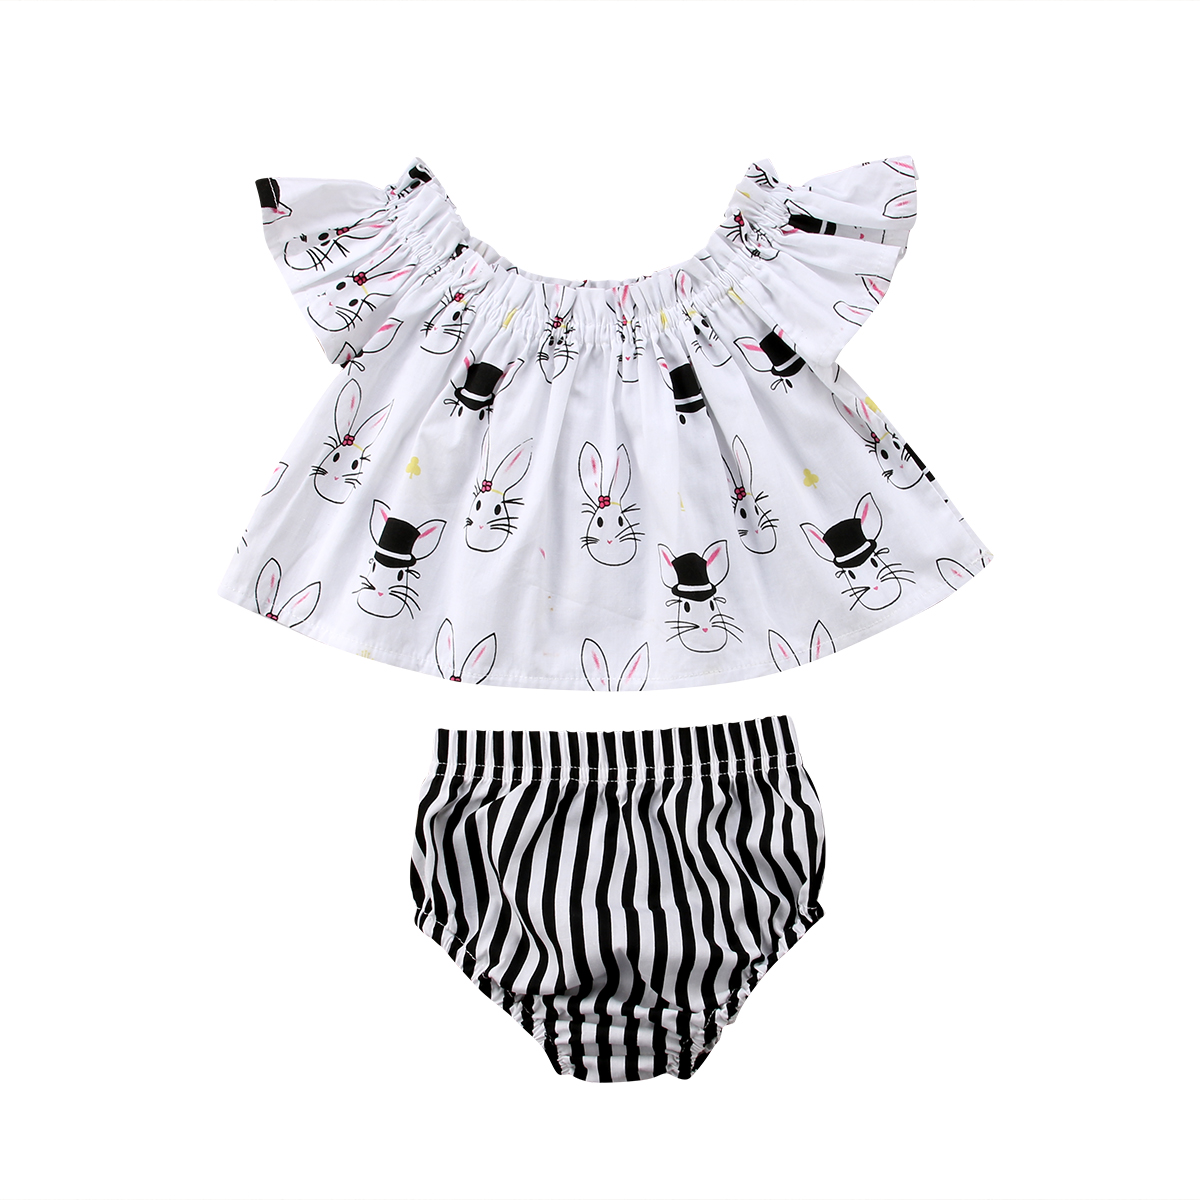 Cute Baby Girl Infant Toddled Clothes Set Off Shoulder Top Rabbit Print T-Shirt+Striped Shorts 2018 New Easter Summer Outfit